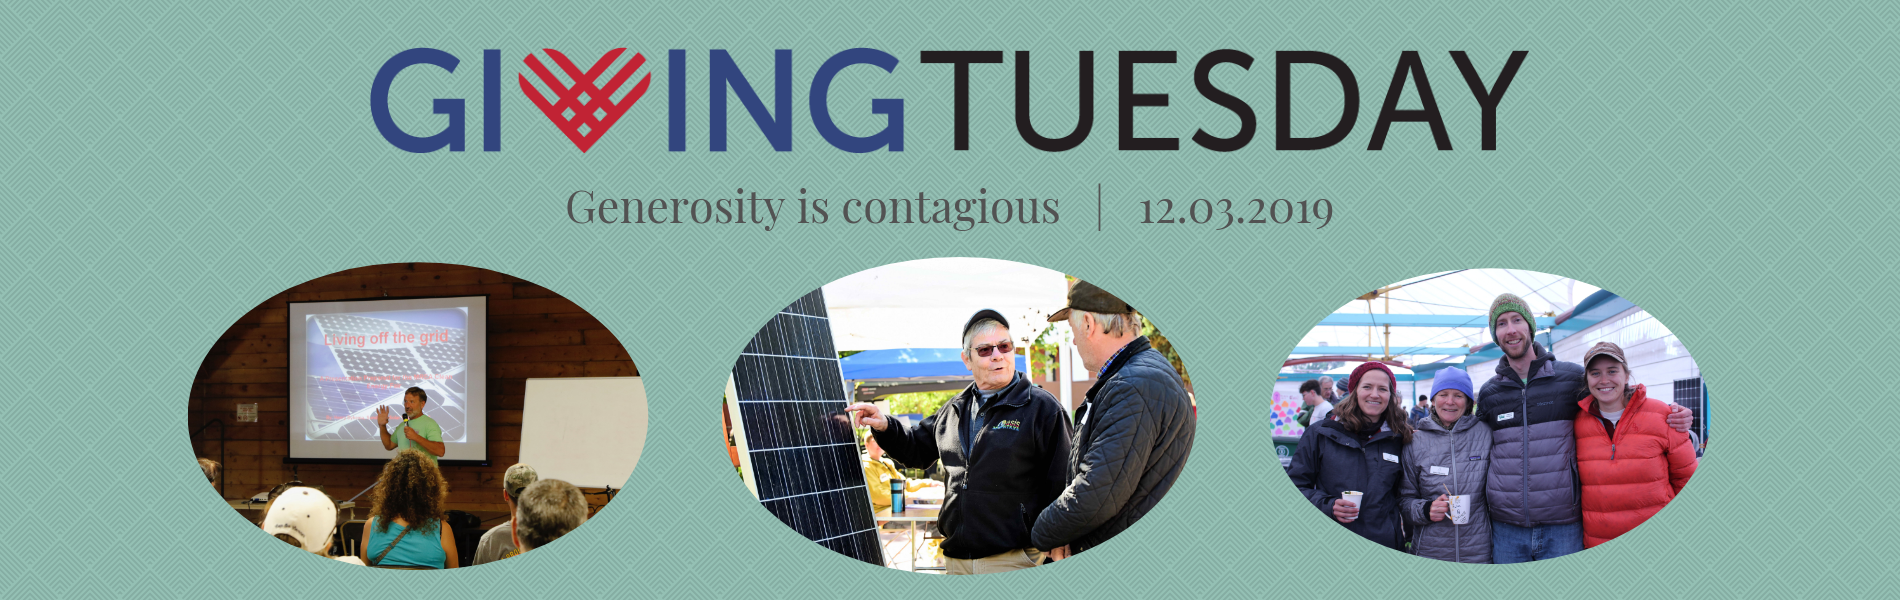 GivingTuesday homepage slider banner v2